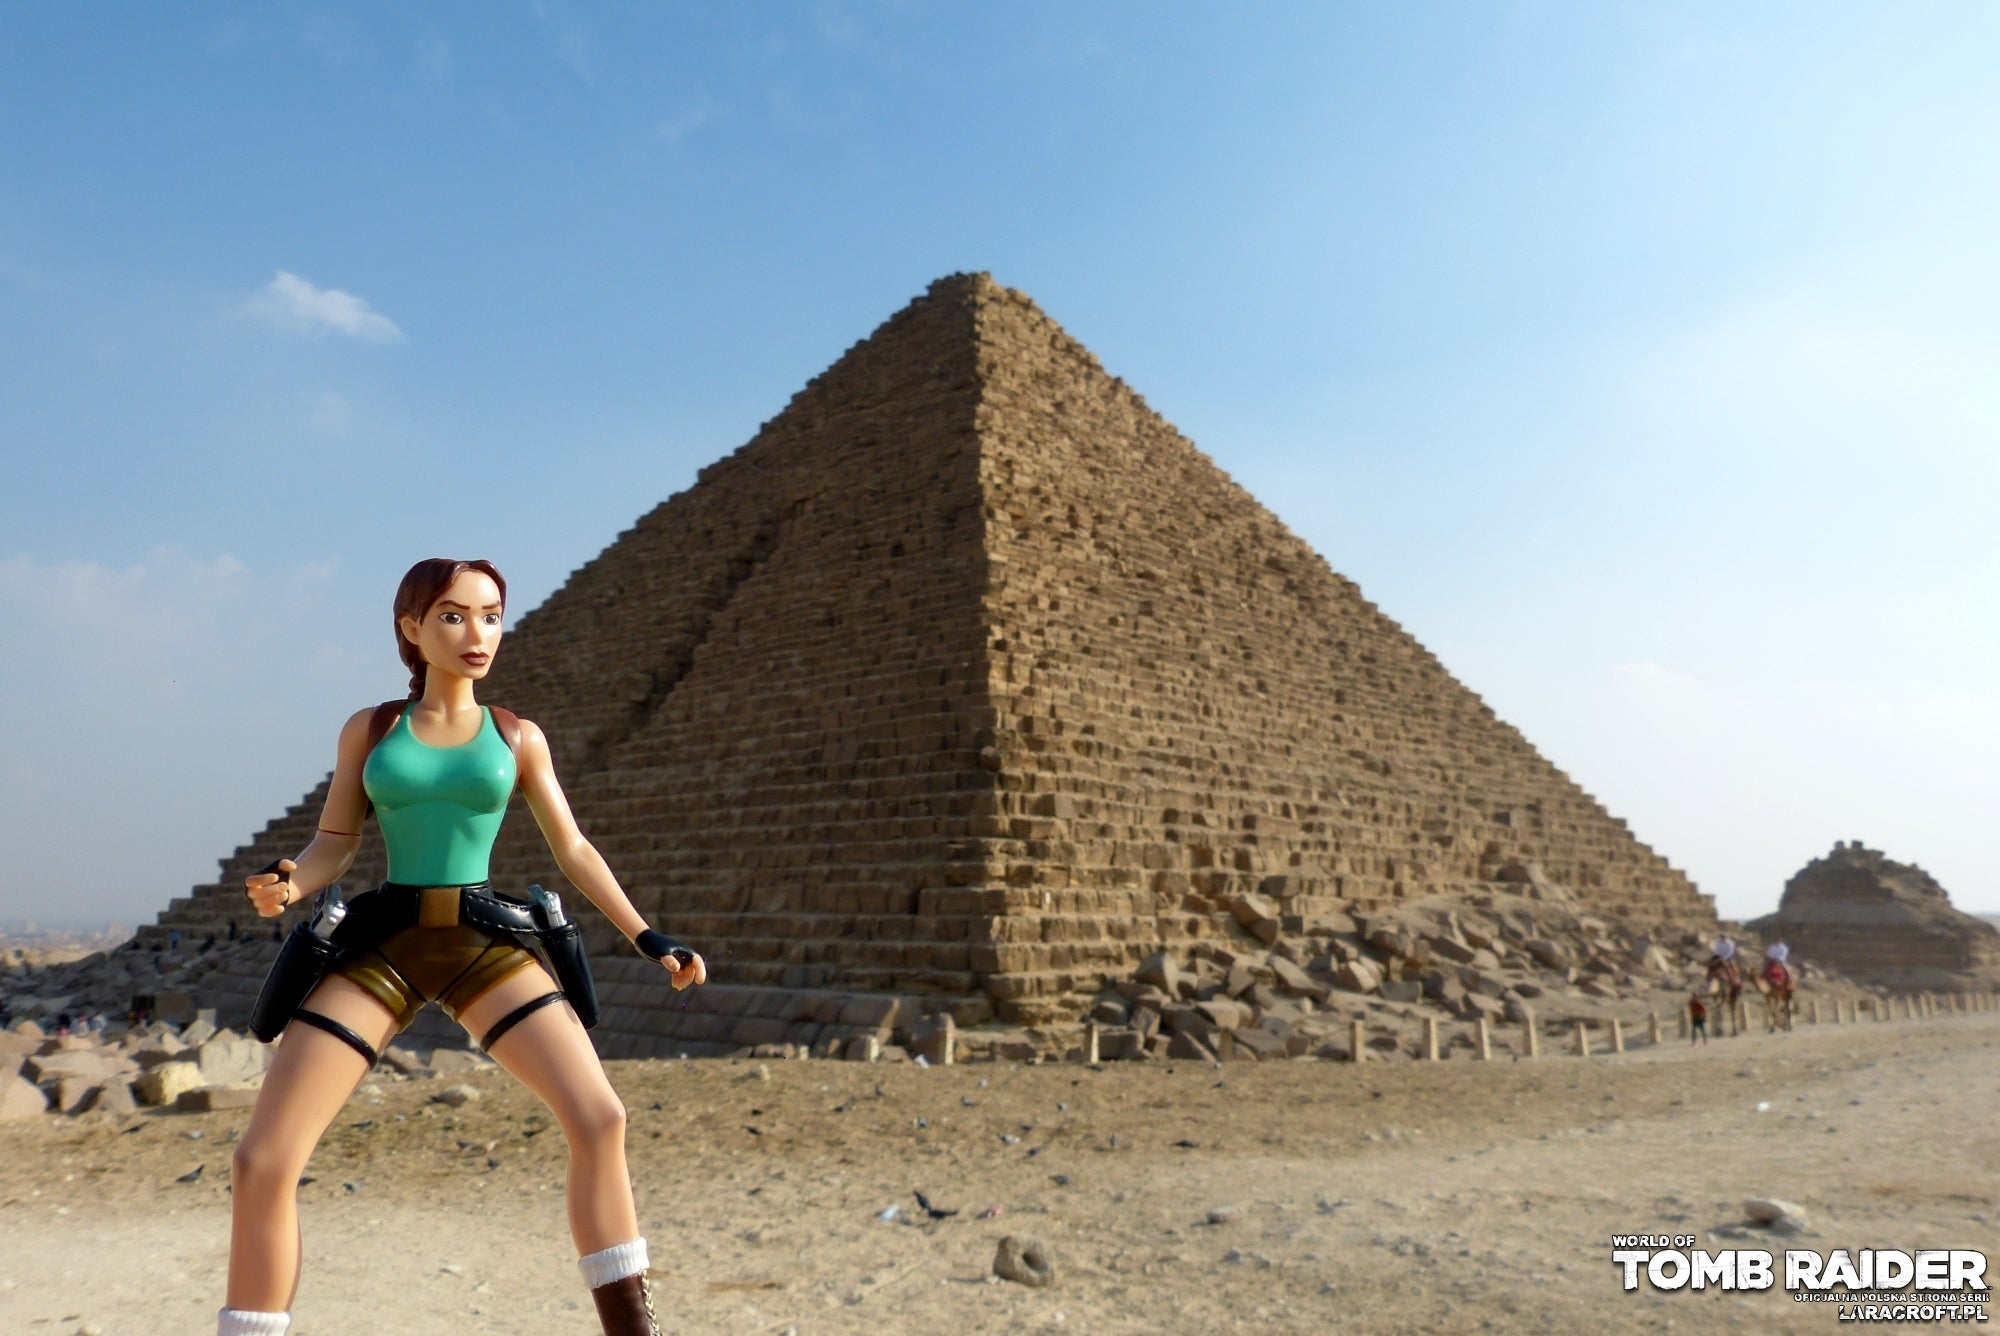 A photograph of a Lara Croft figure in front of a pyramid in Egypt